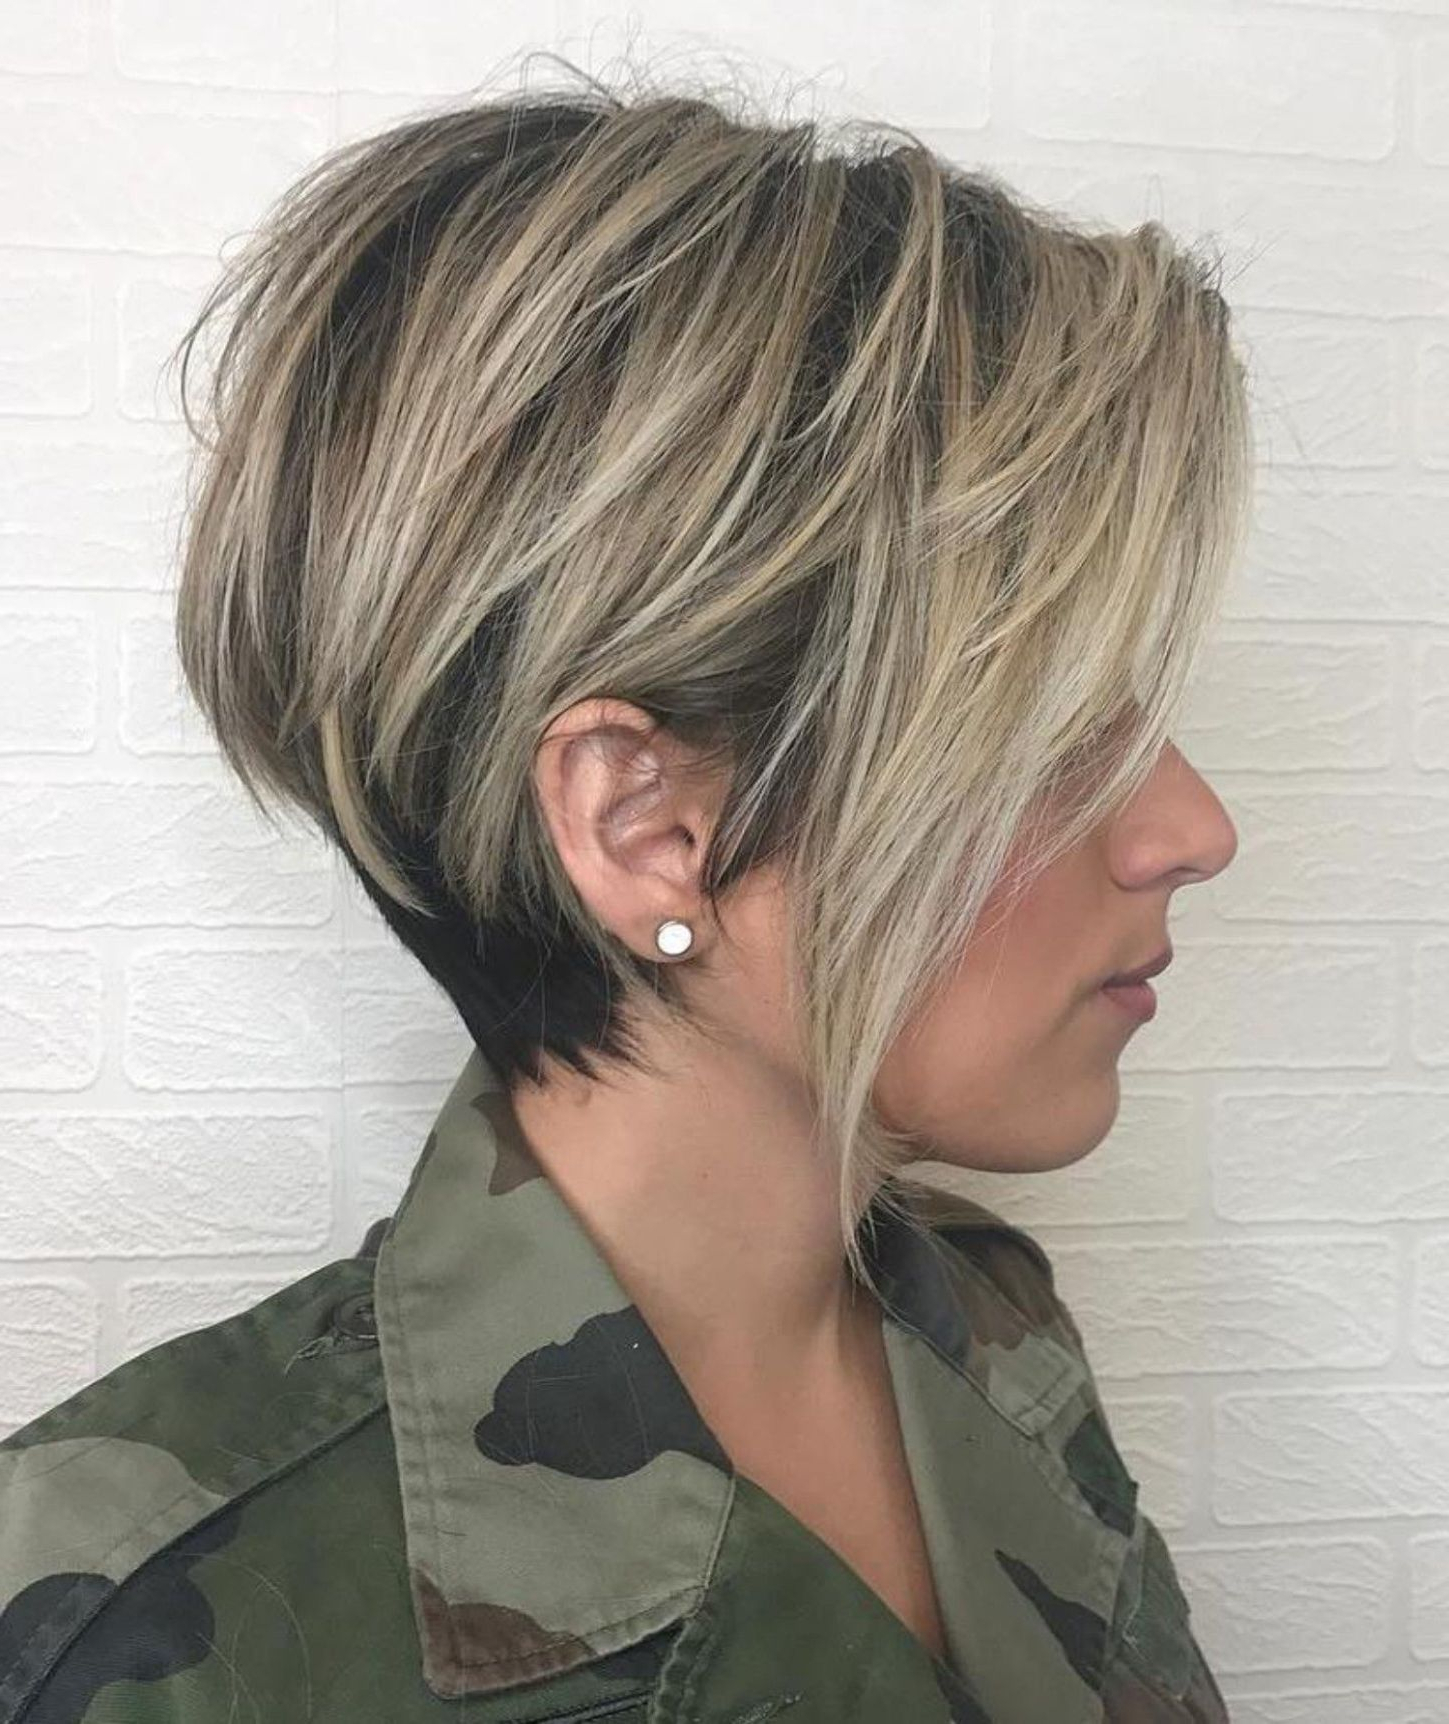 100 Mind Blowing Short Hairstyles For Fine Hair In 2018 | Hairstyle Pertaining To Short Ruffled Hairstyles With Blonde Highlights (View 9 of 20)